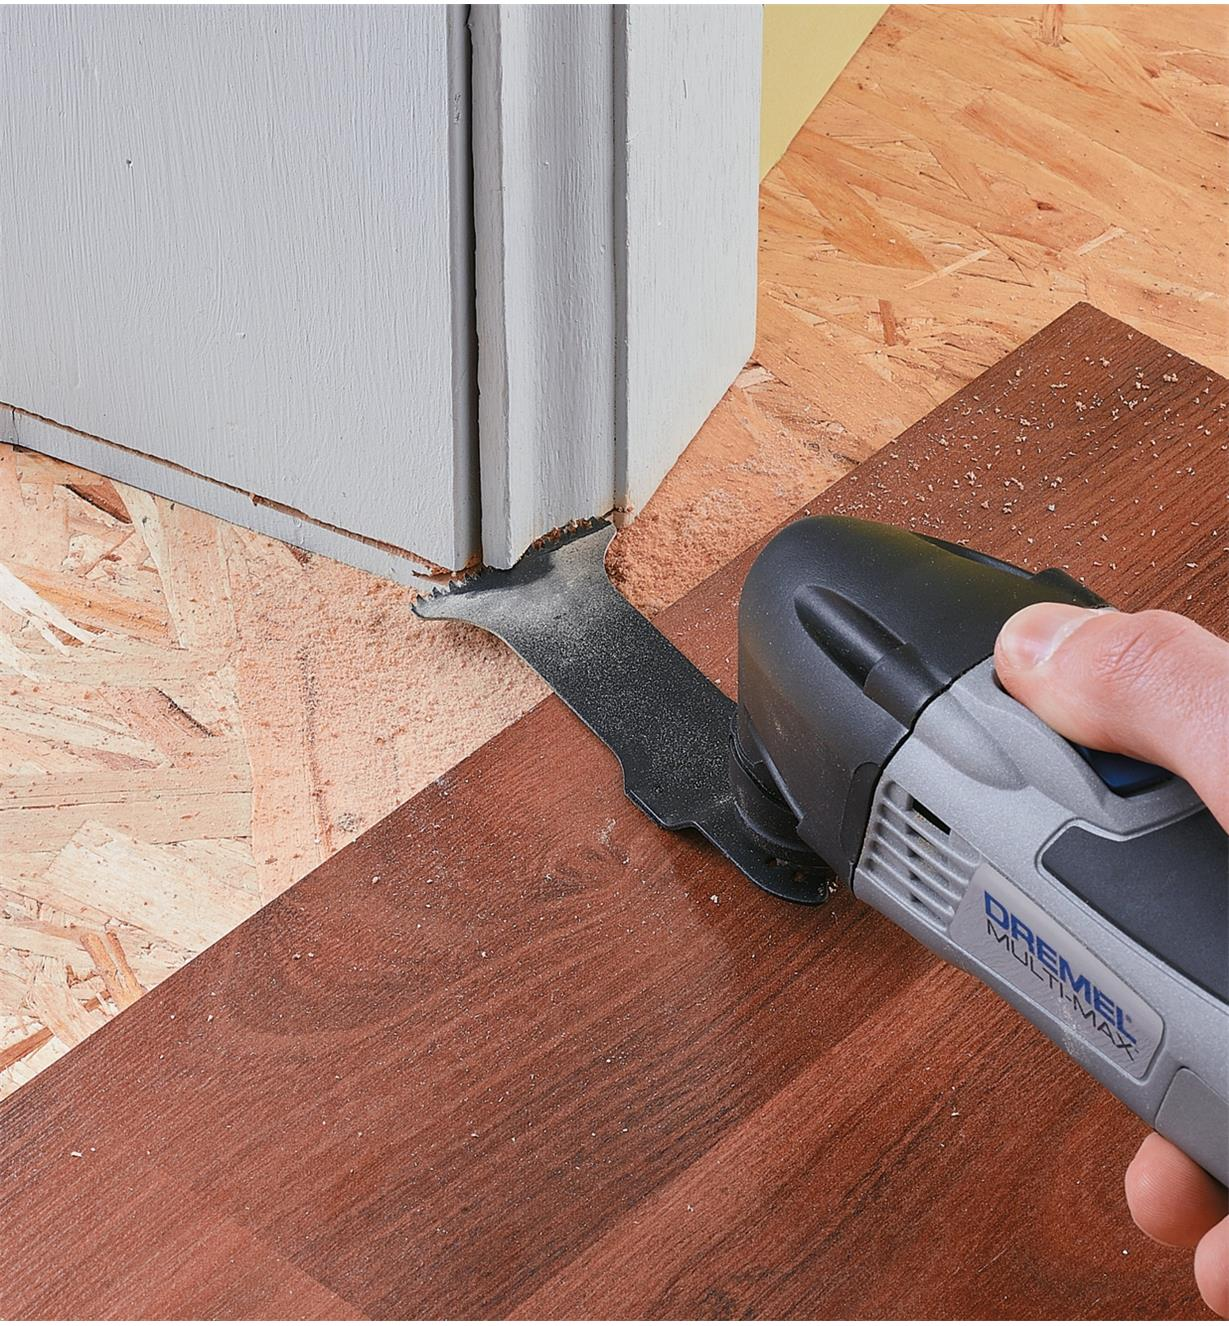 Multi-tool blade used to cut out a slot in wall trim for installing floorboards